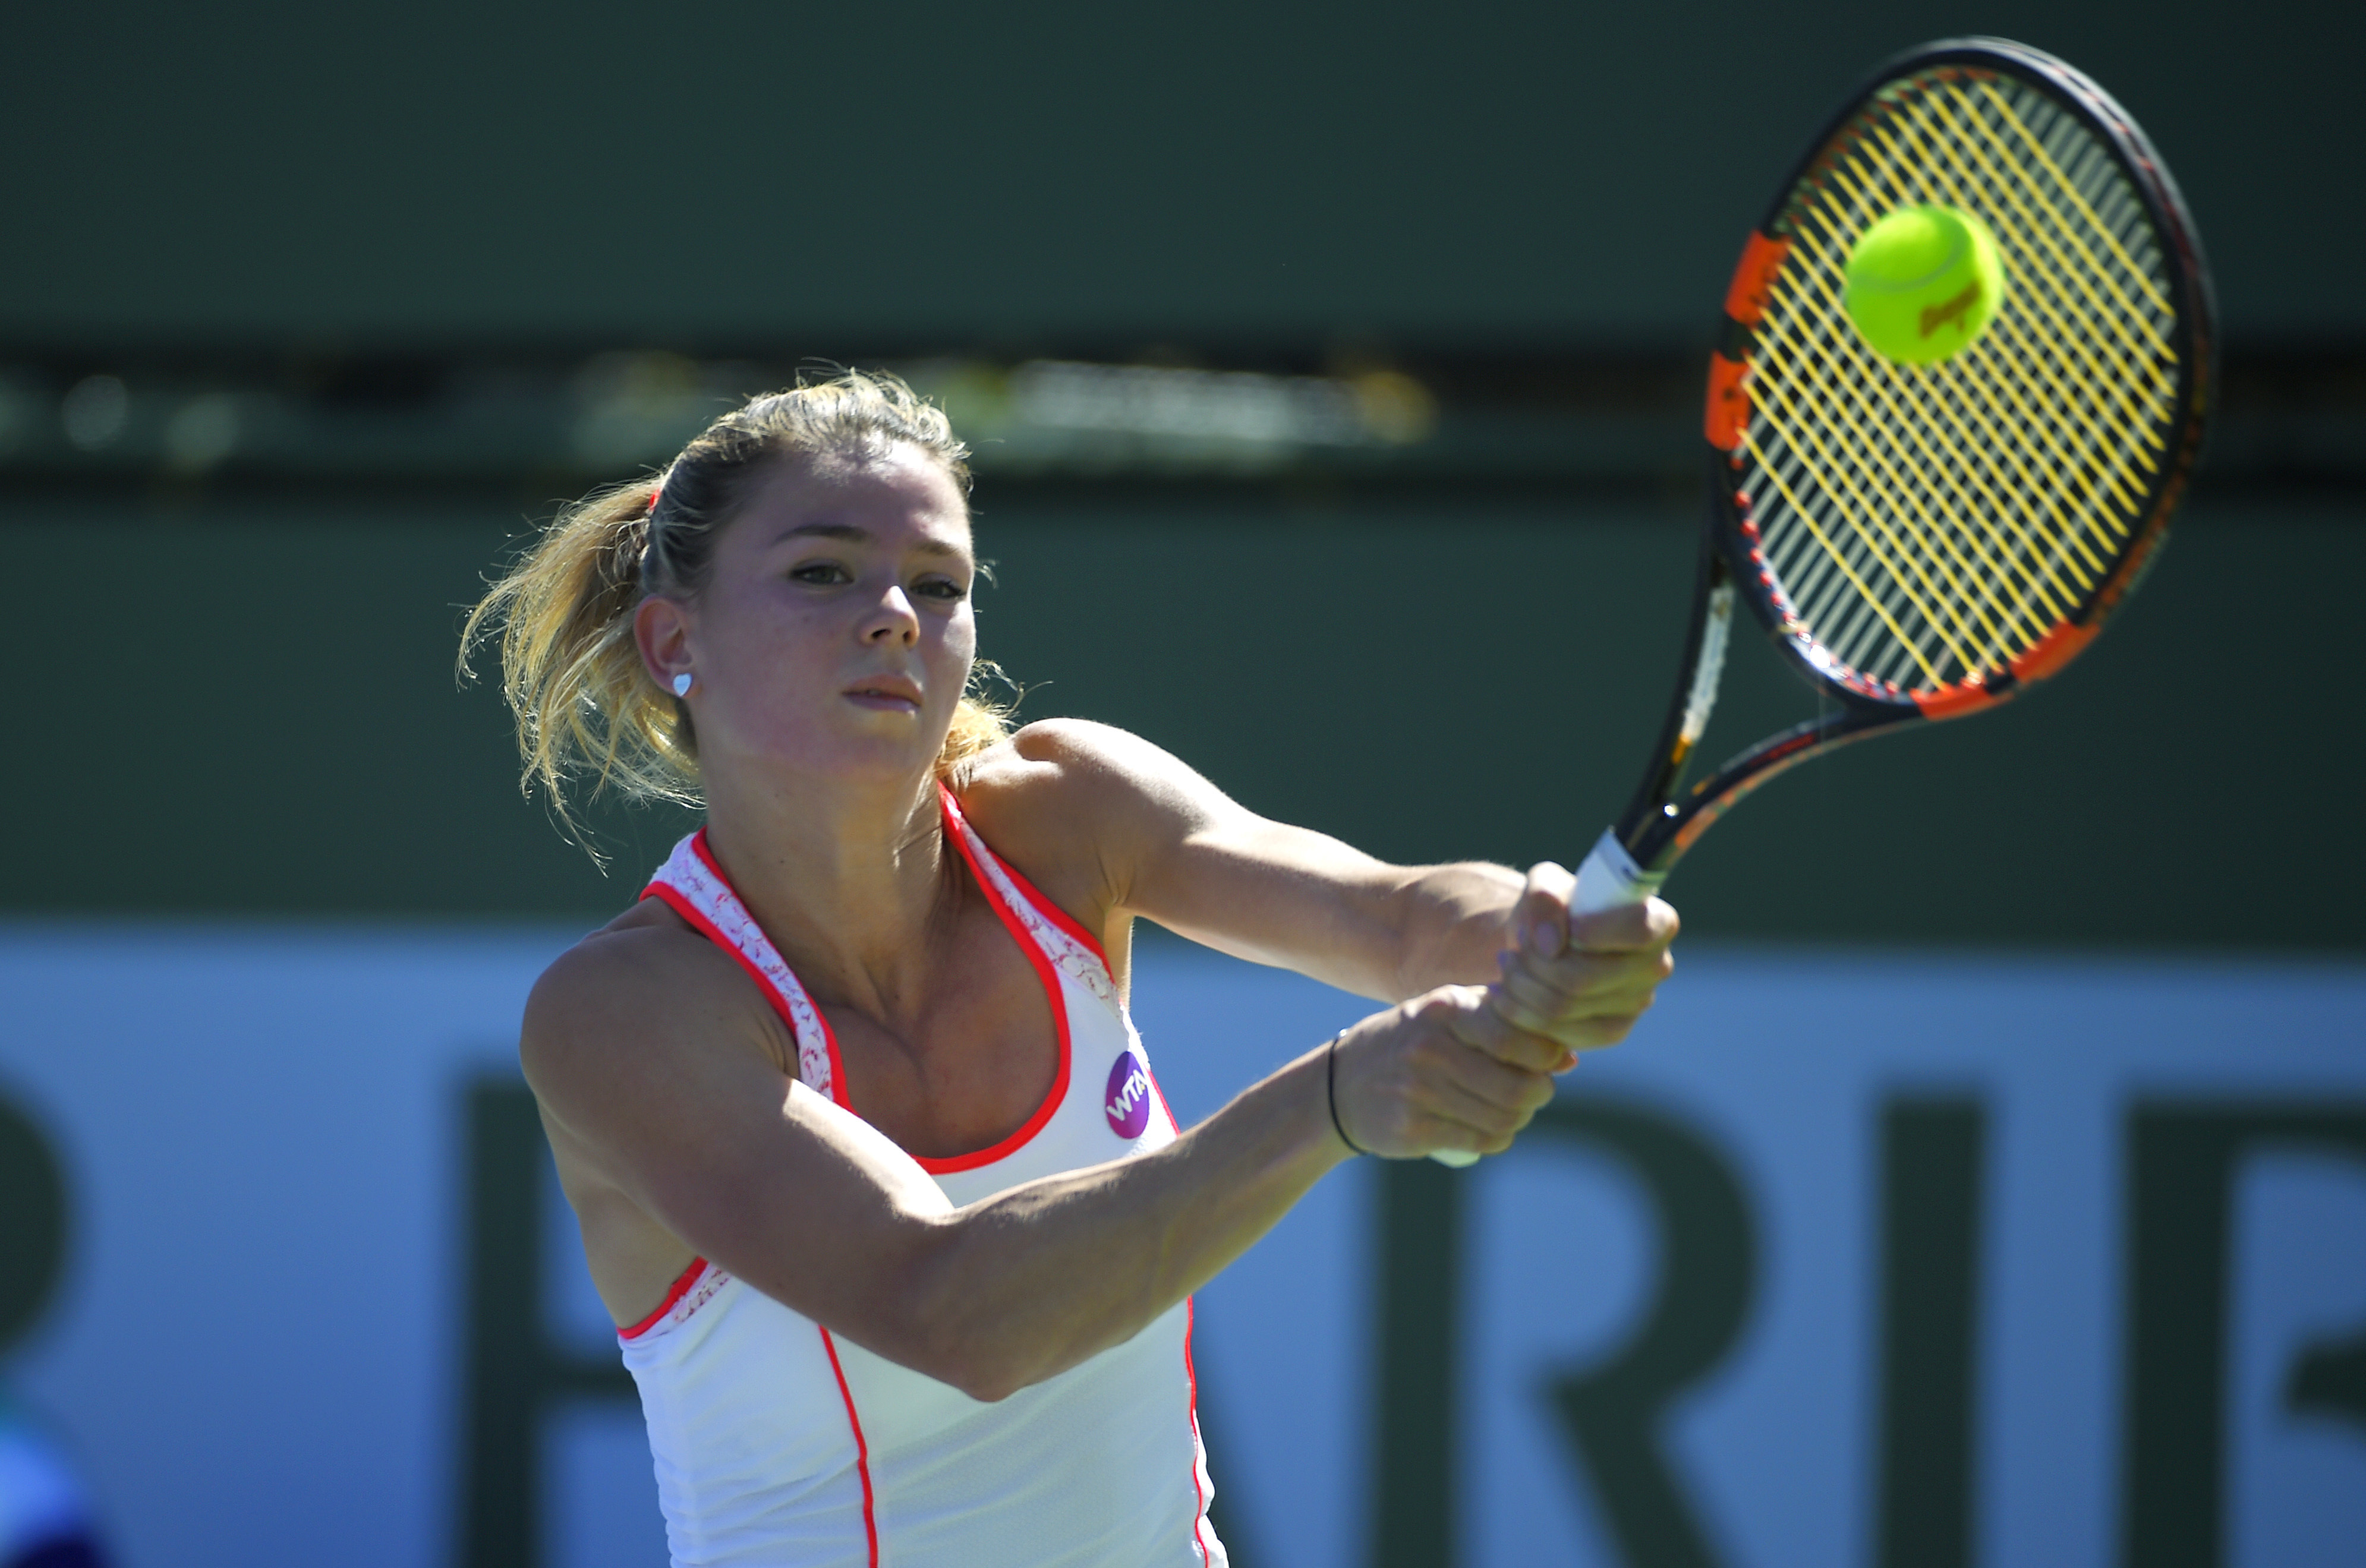 Camila Giorgi, of Italy, returns to Julia Goerges, of Germany, during their match at the BNP Paribas Open tennis tournament, Thursday, March 10, 2016, in Indian Wells, Calif. (AP Photo/Mark J. Terrill)